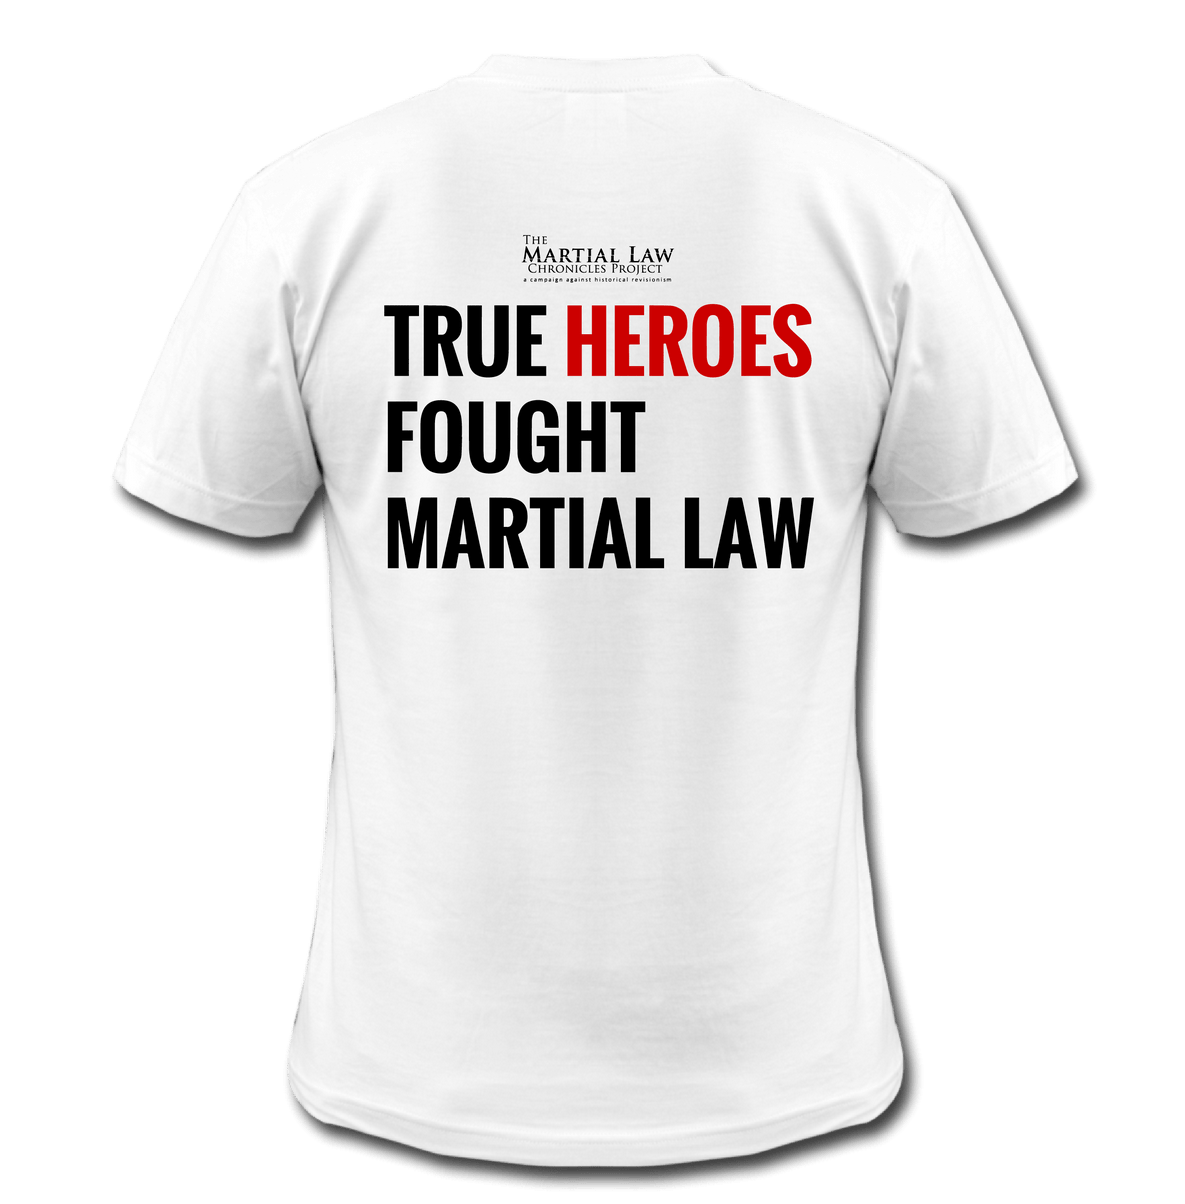 True Heroes Fought Martial Law RELAUNCH